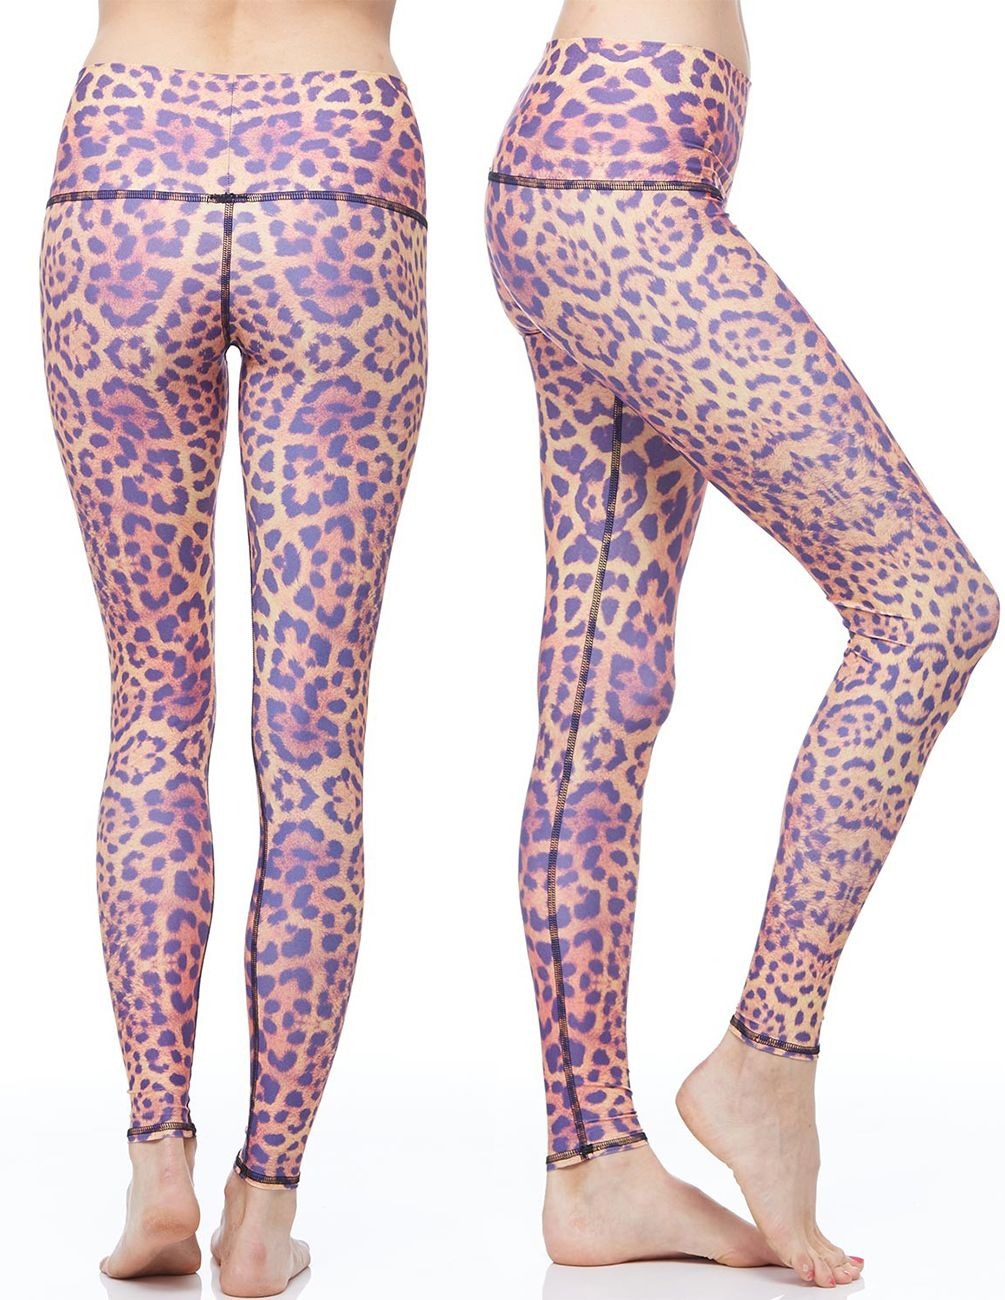 Unleash your inner animal! Teeki makes beautiful printed leggings for hot yoga and lifestyle wear. #evolvefitwear  Available at evolvefitwear.com